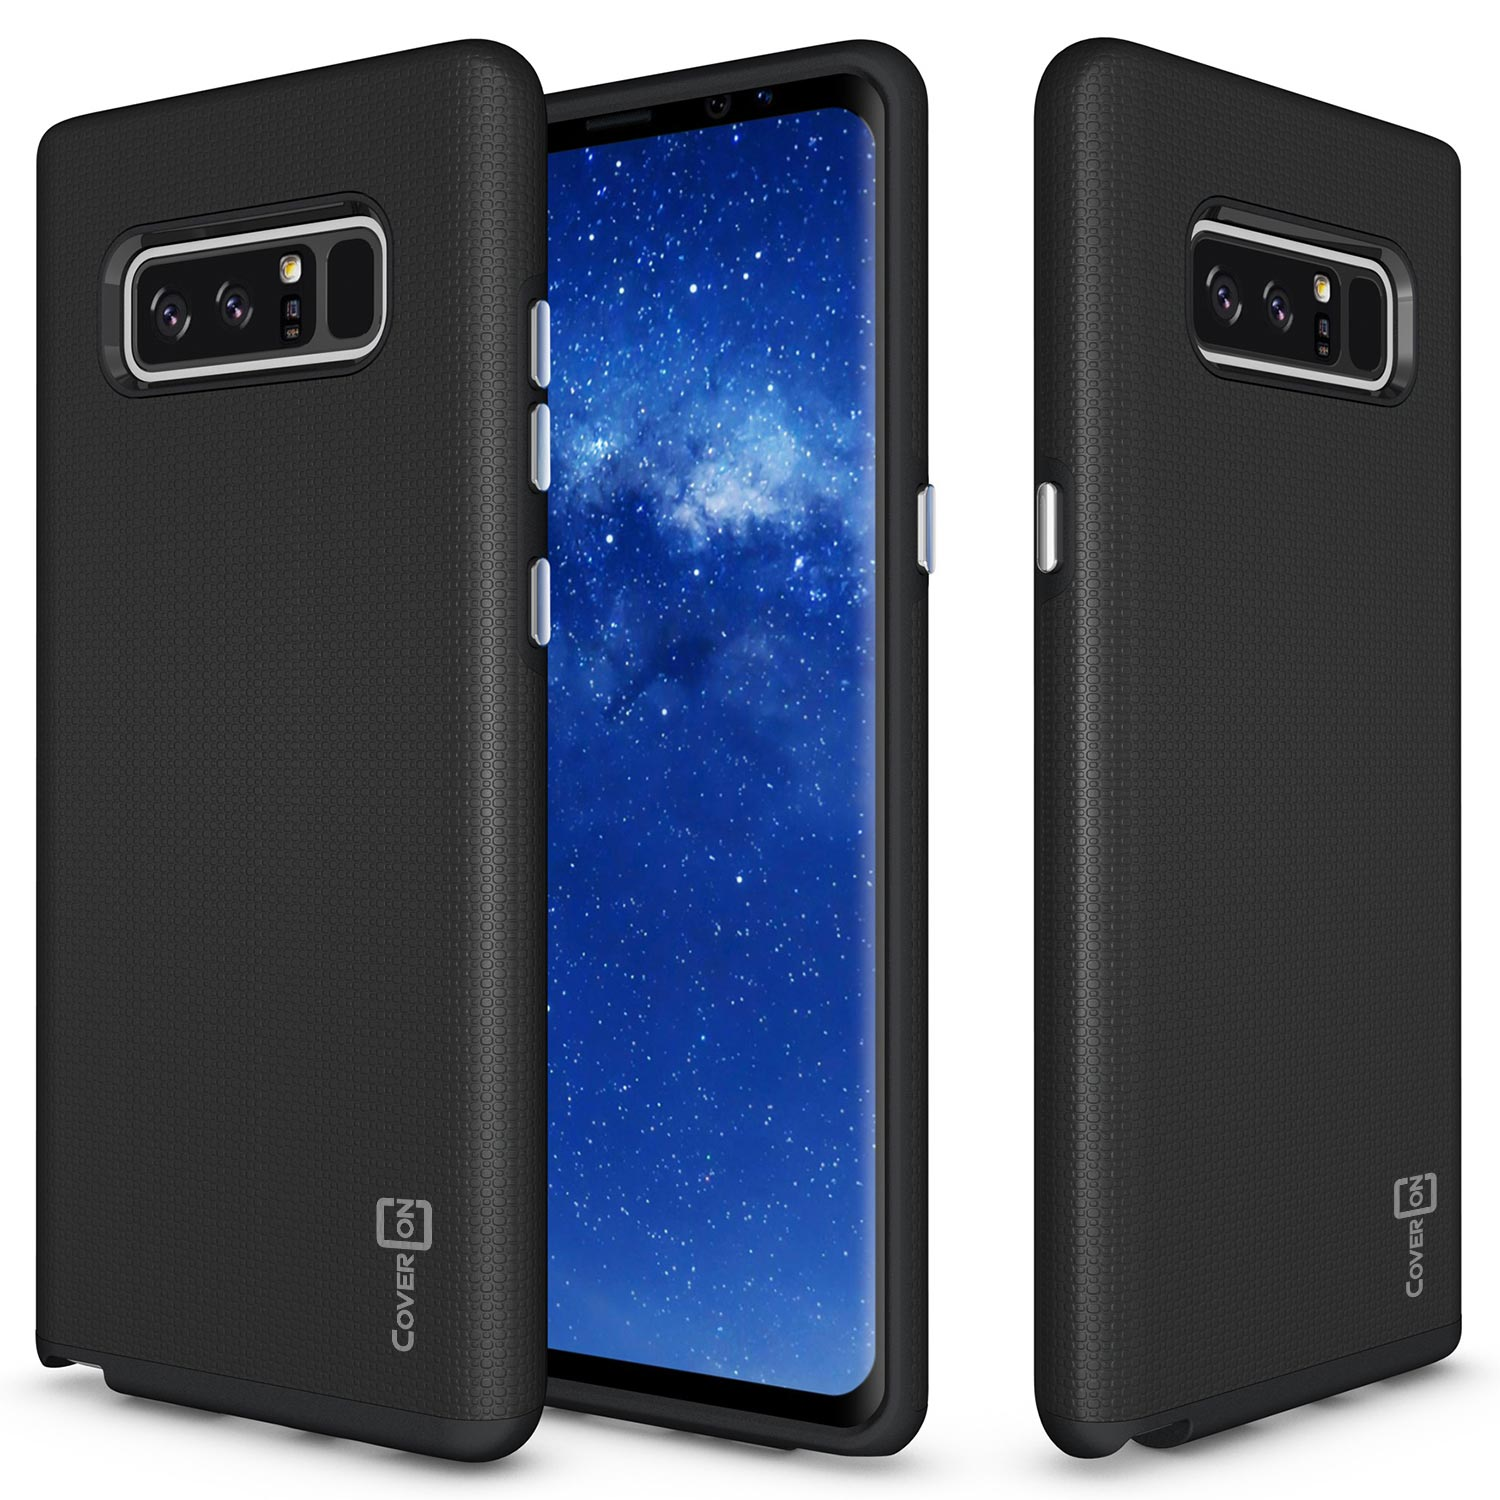 CoverON Samsung Galaxy Note 8 Case, Rugged Series Protective Hybrid Phone Cover